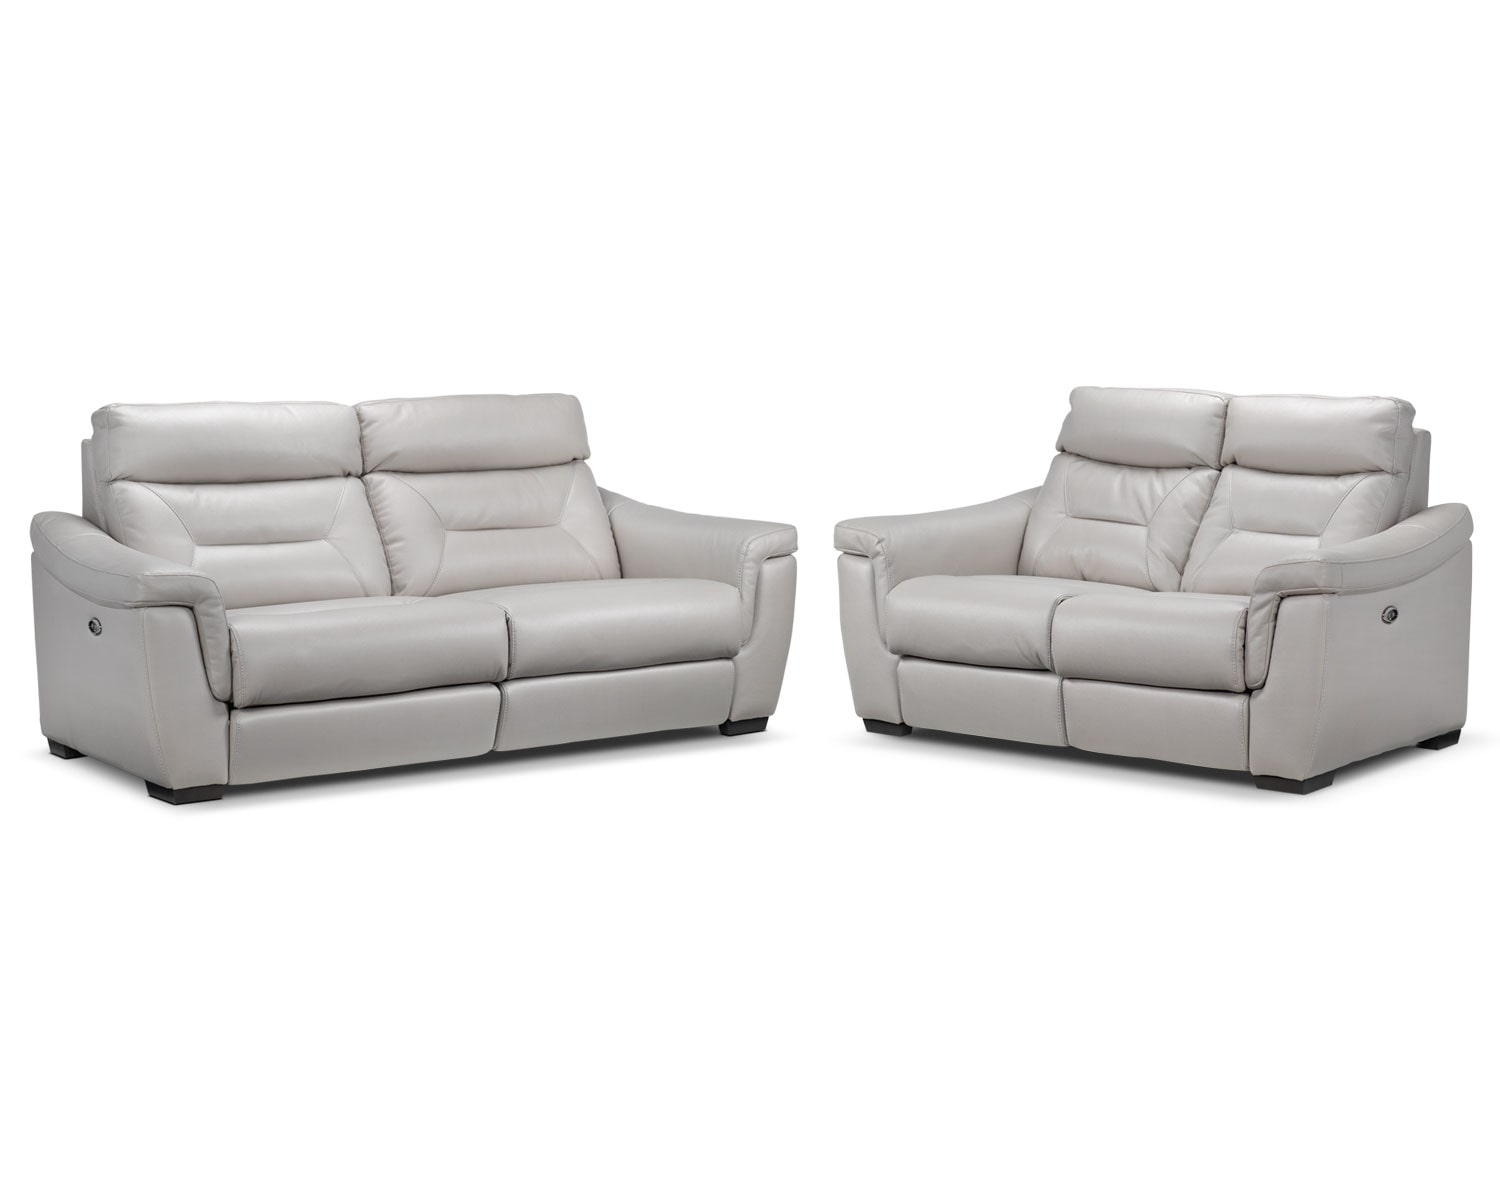 Ralston Power Reclining Sofa and Power Reclining Loveseat Set - Silver-Grey